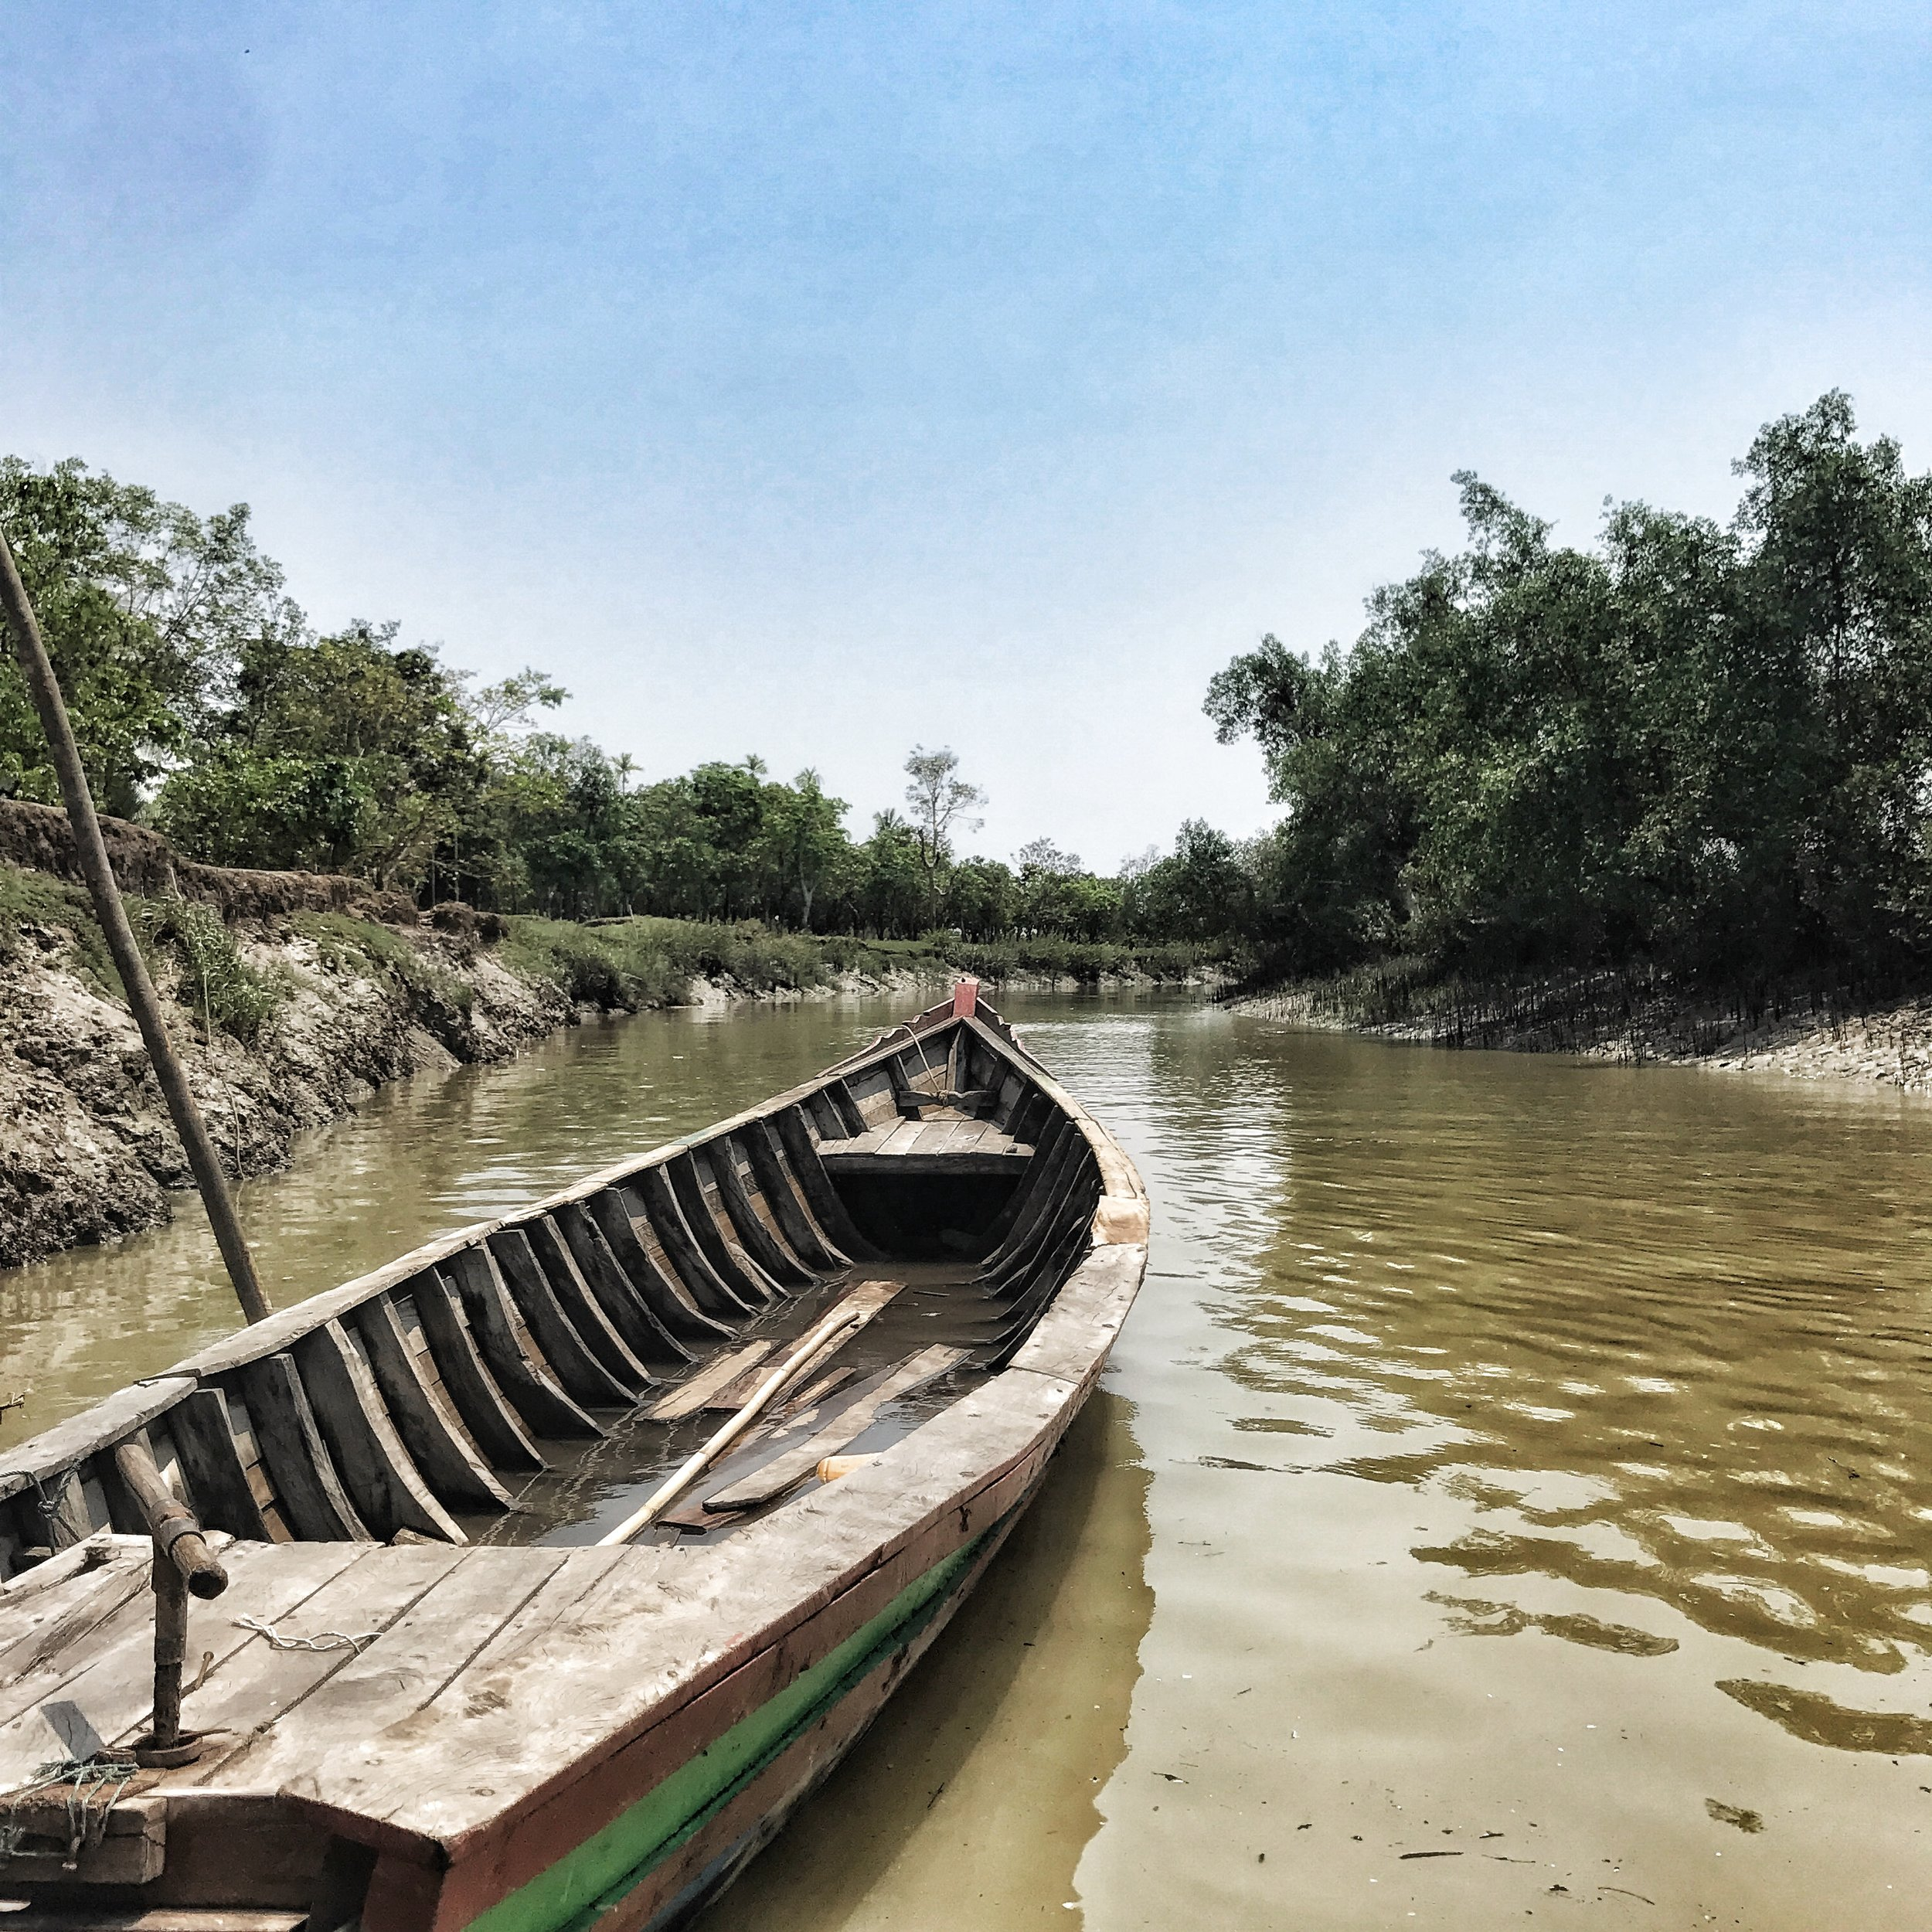 An empty boat on the riverways of seemingly-peaceful Northern Rakhine State, Myanmar, just days before the Rohingya Crisis erupted there.  Photo by Ashley S. Kinseth.